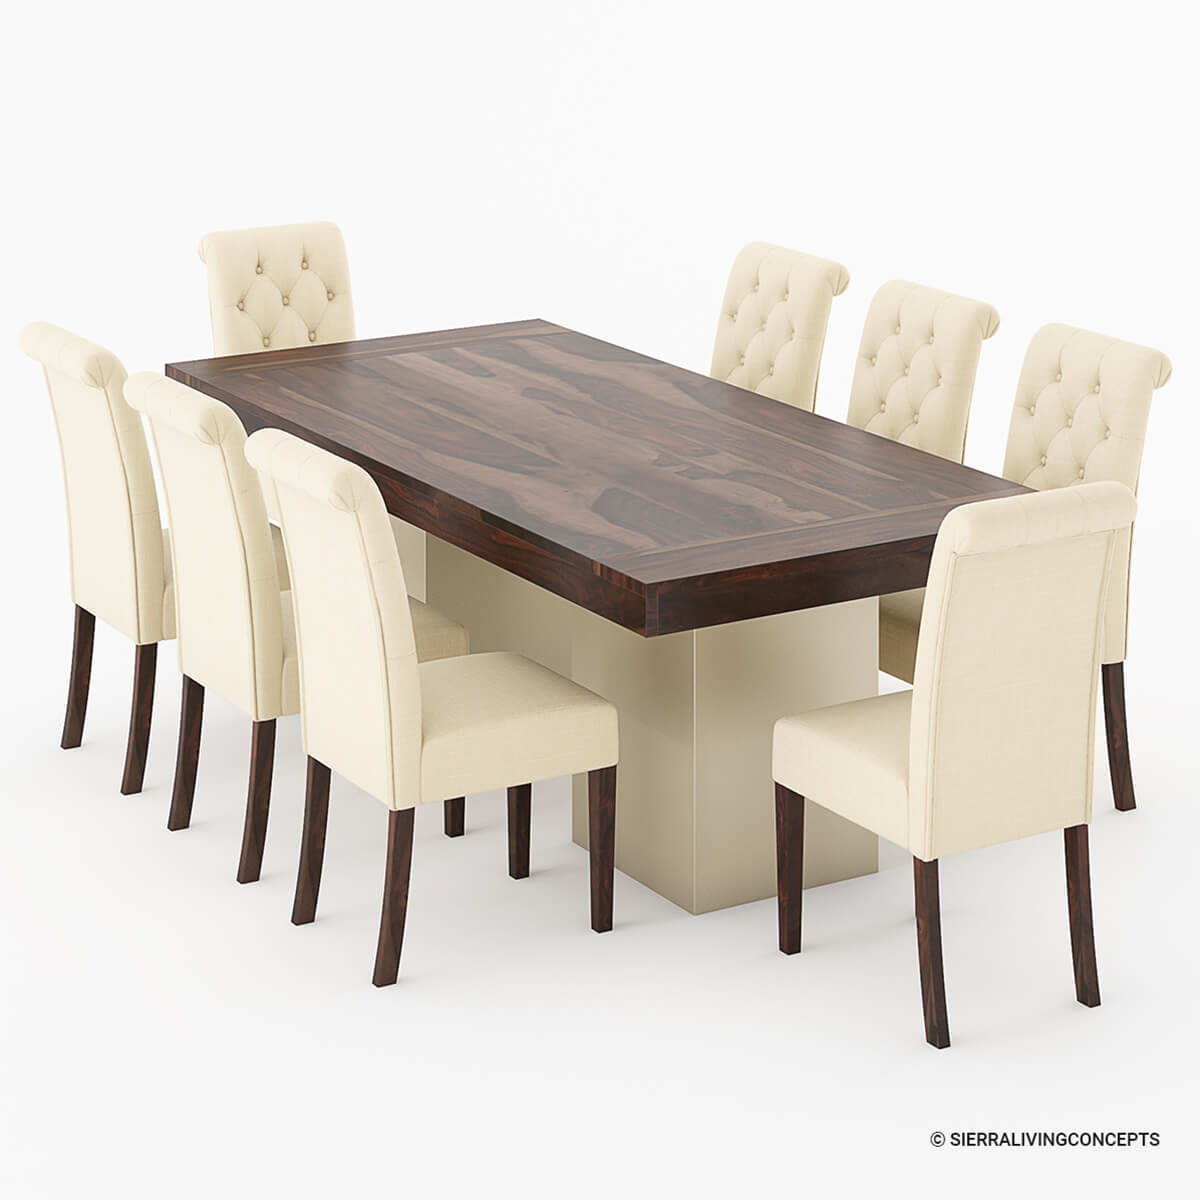 Leather Dining Table: Solid Wood Large Rustic Dining Table With Leather Parson